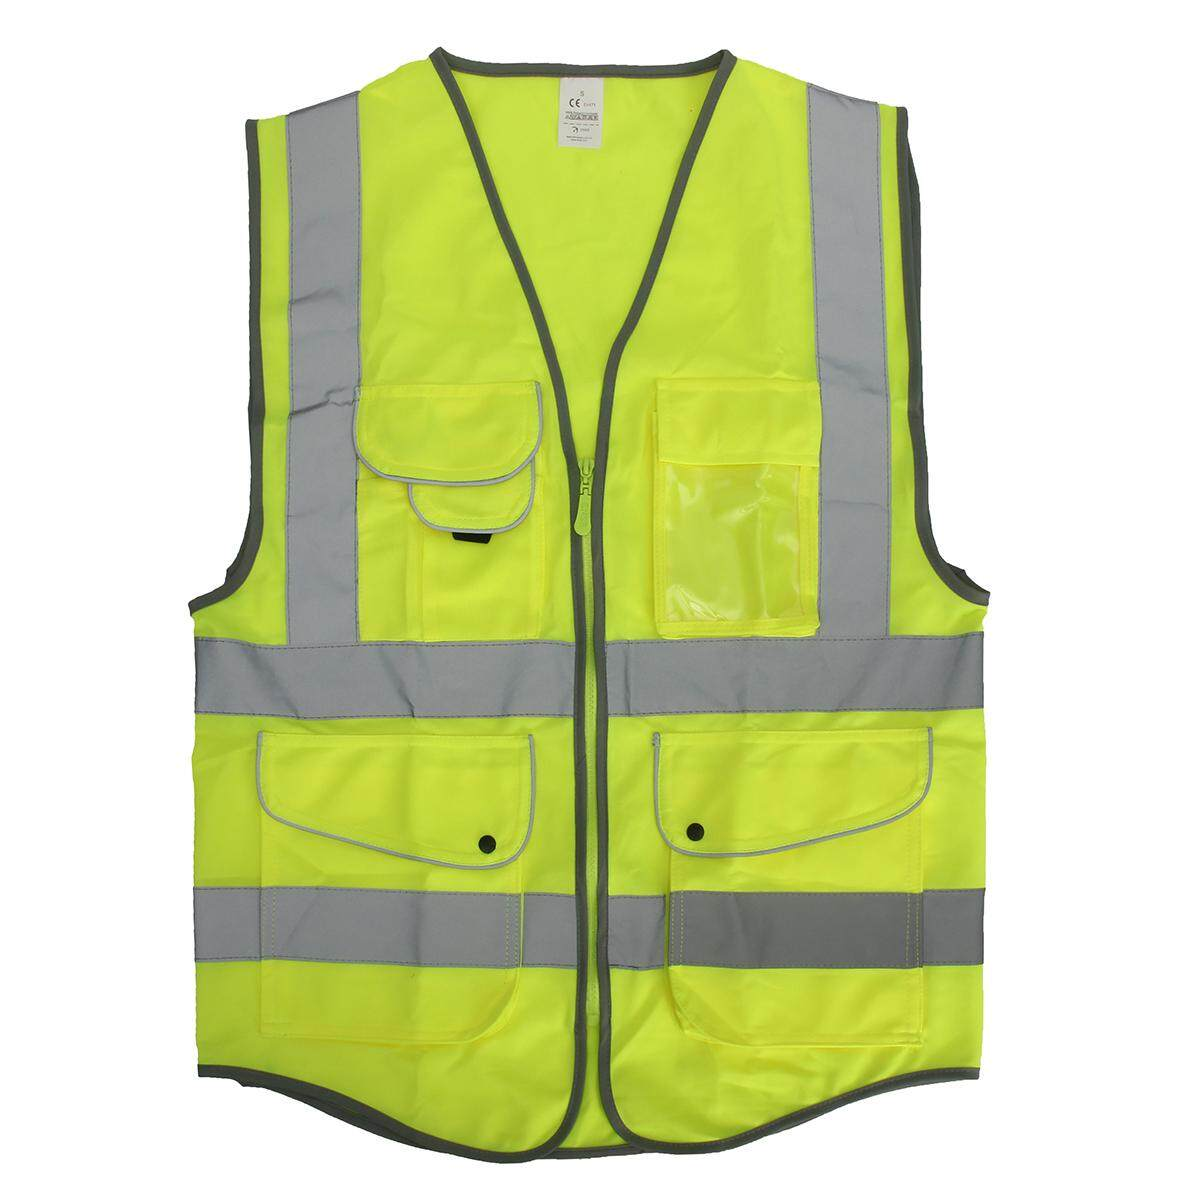 5 Pocket Neon Green High Visibility Reflective Construction Safety Security Vest # M